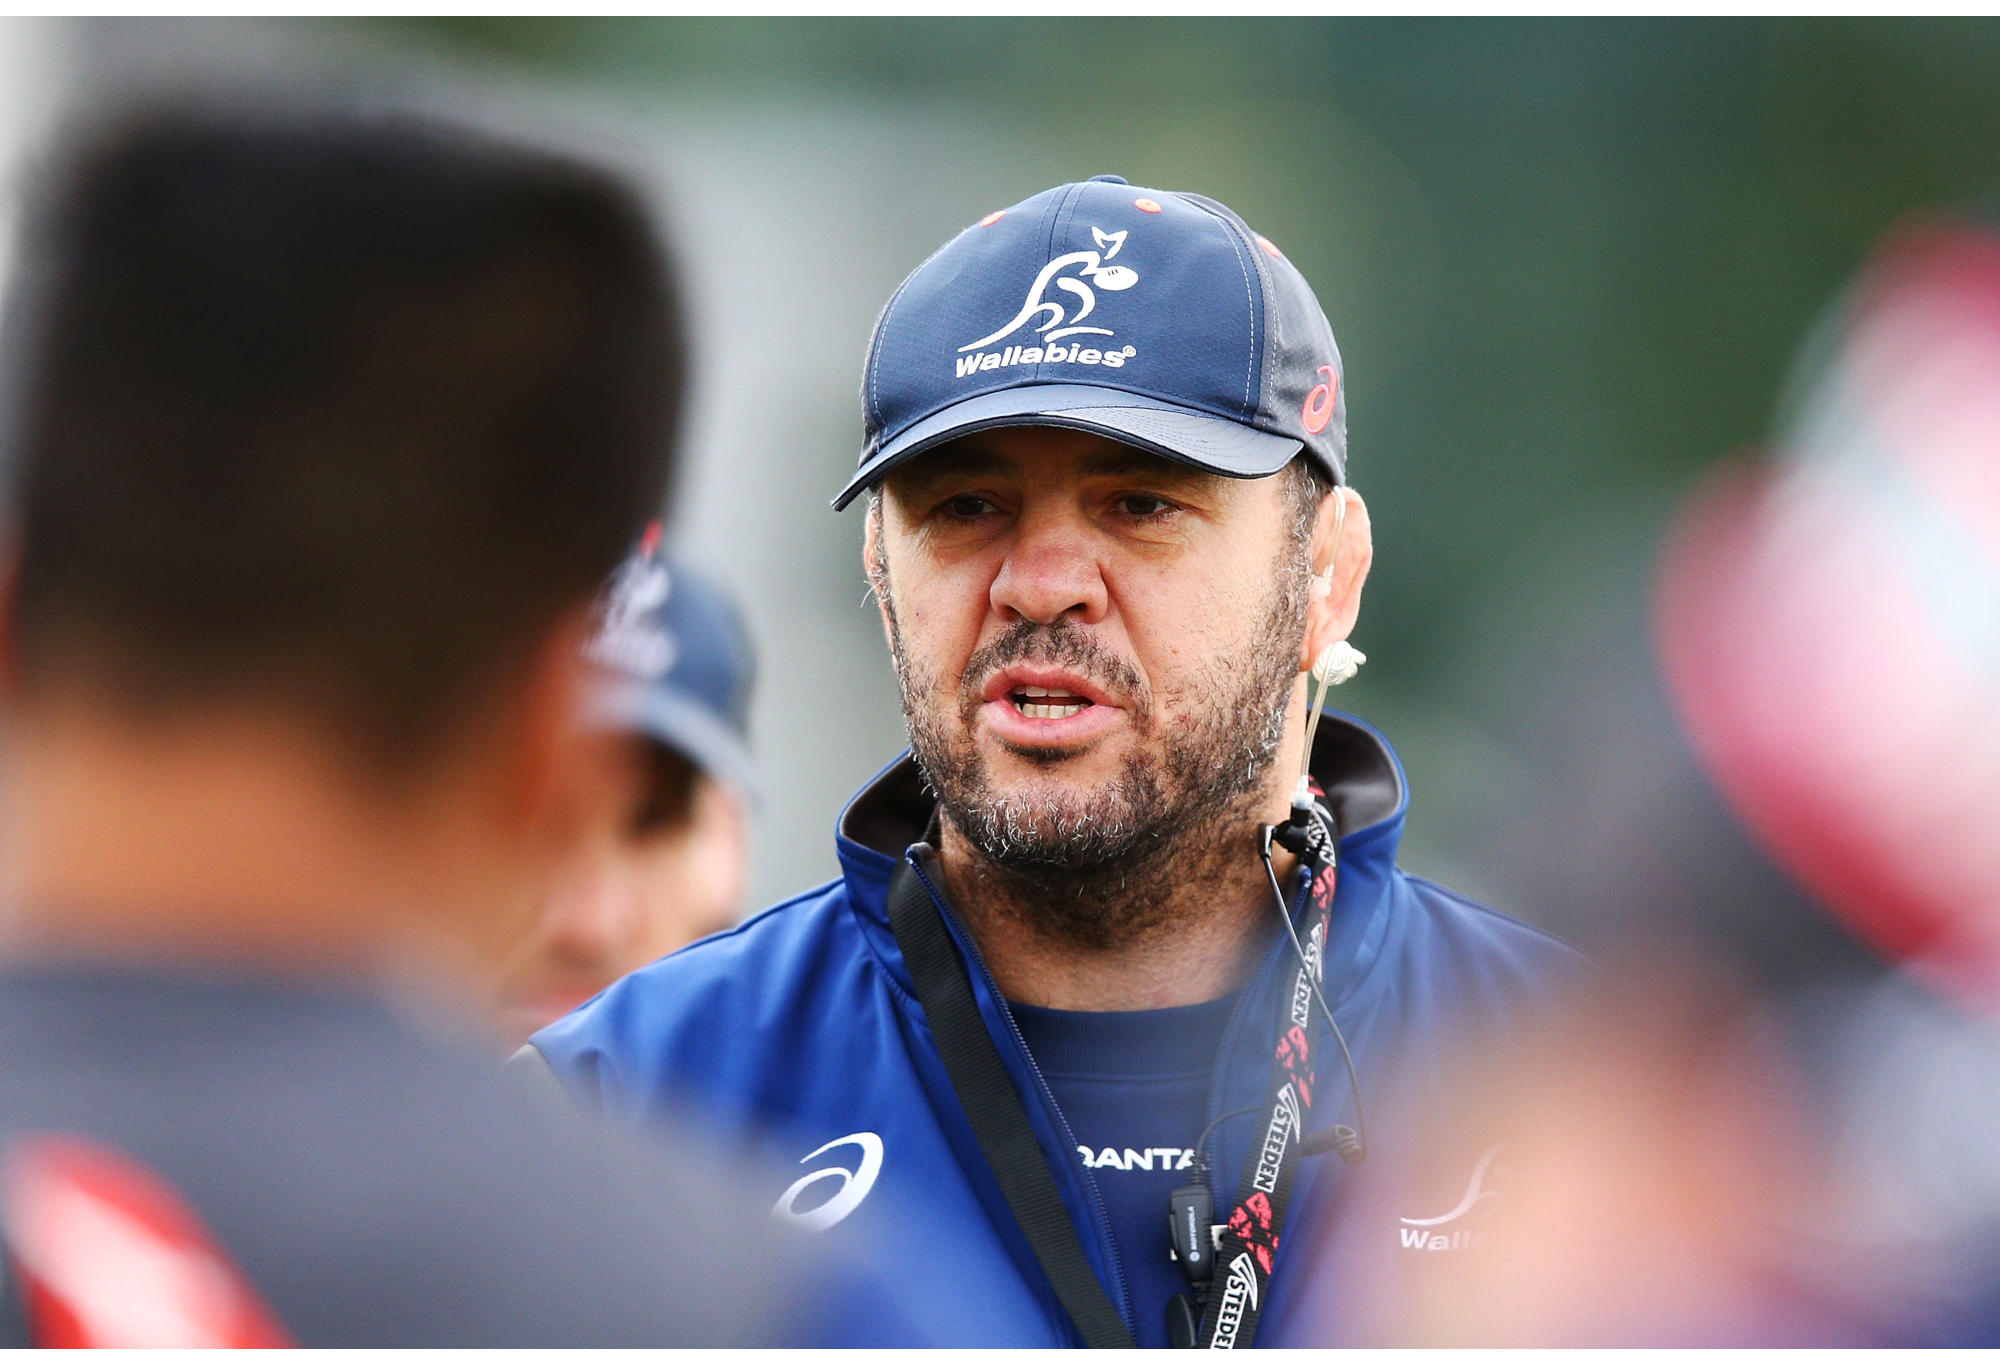 Wallabies head coach Michael Cheika speaks to his players during an Australian Wallabies training session